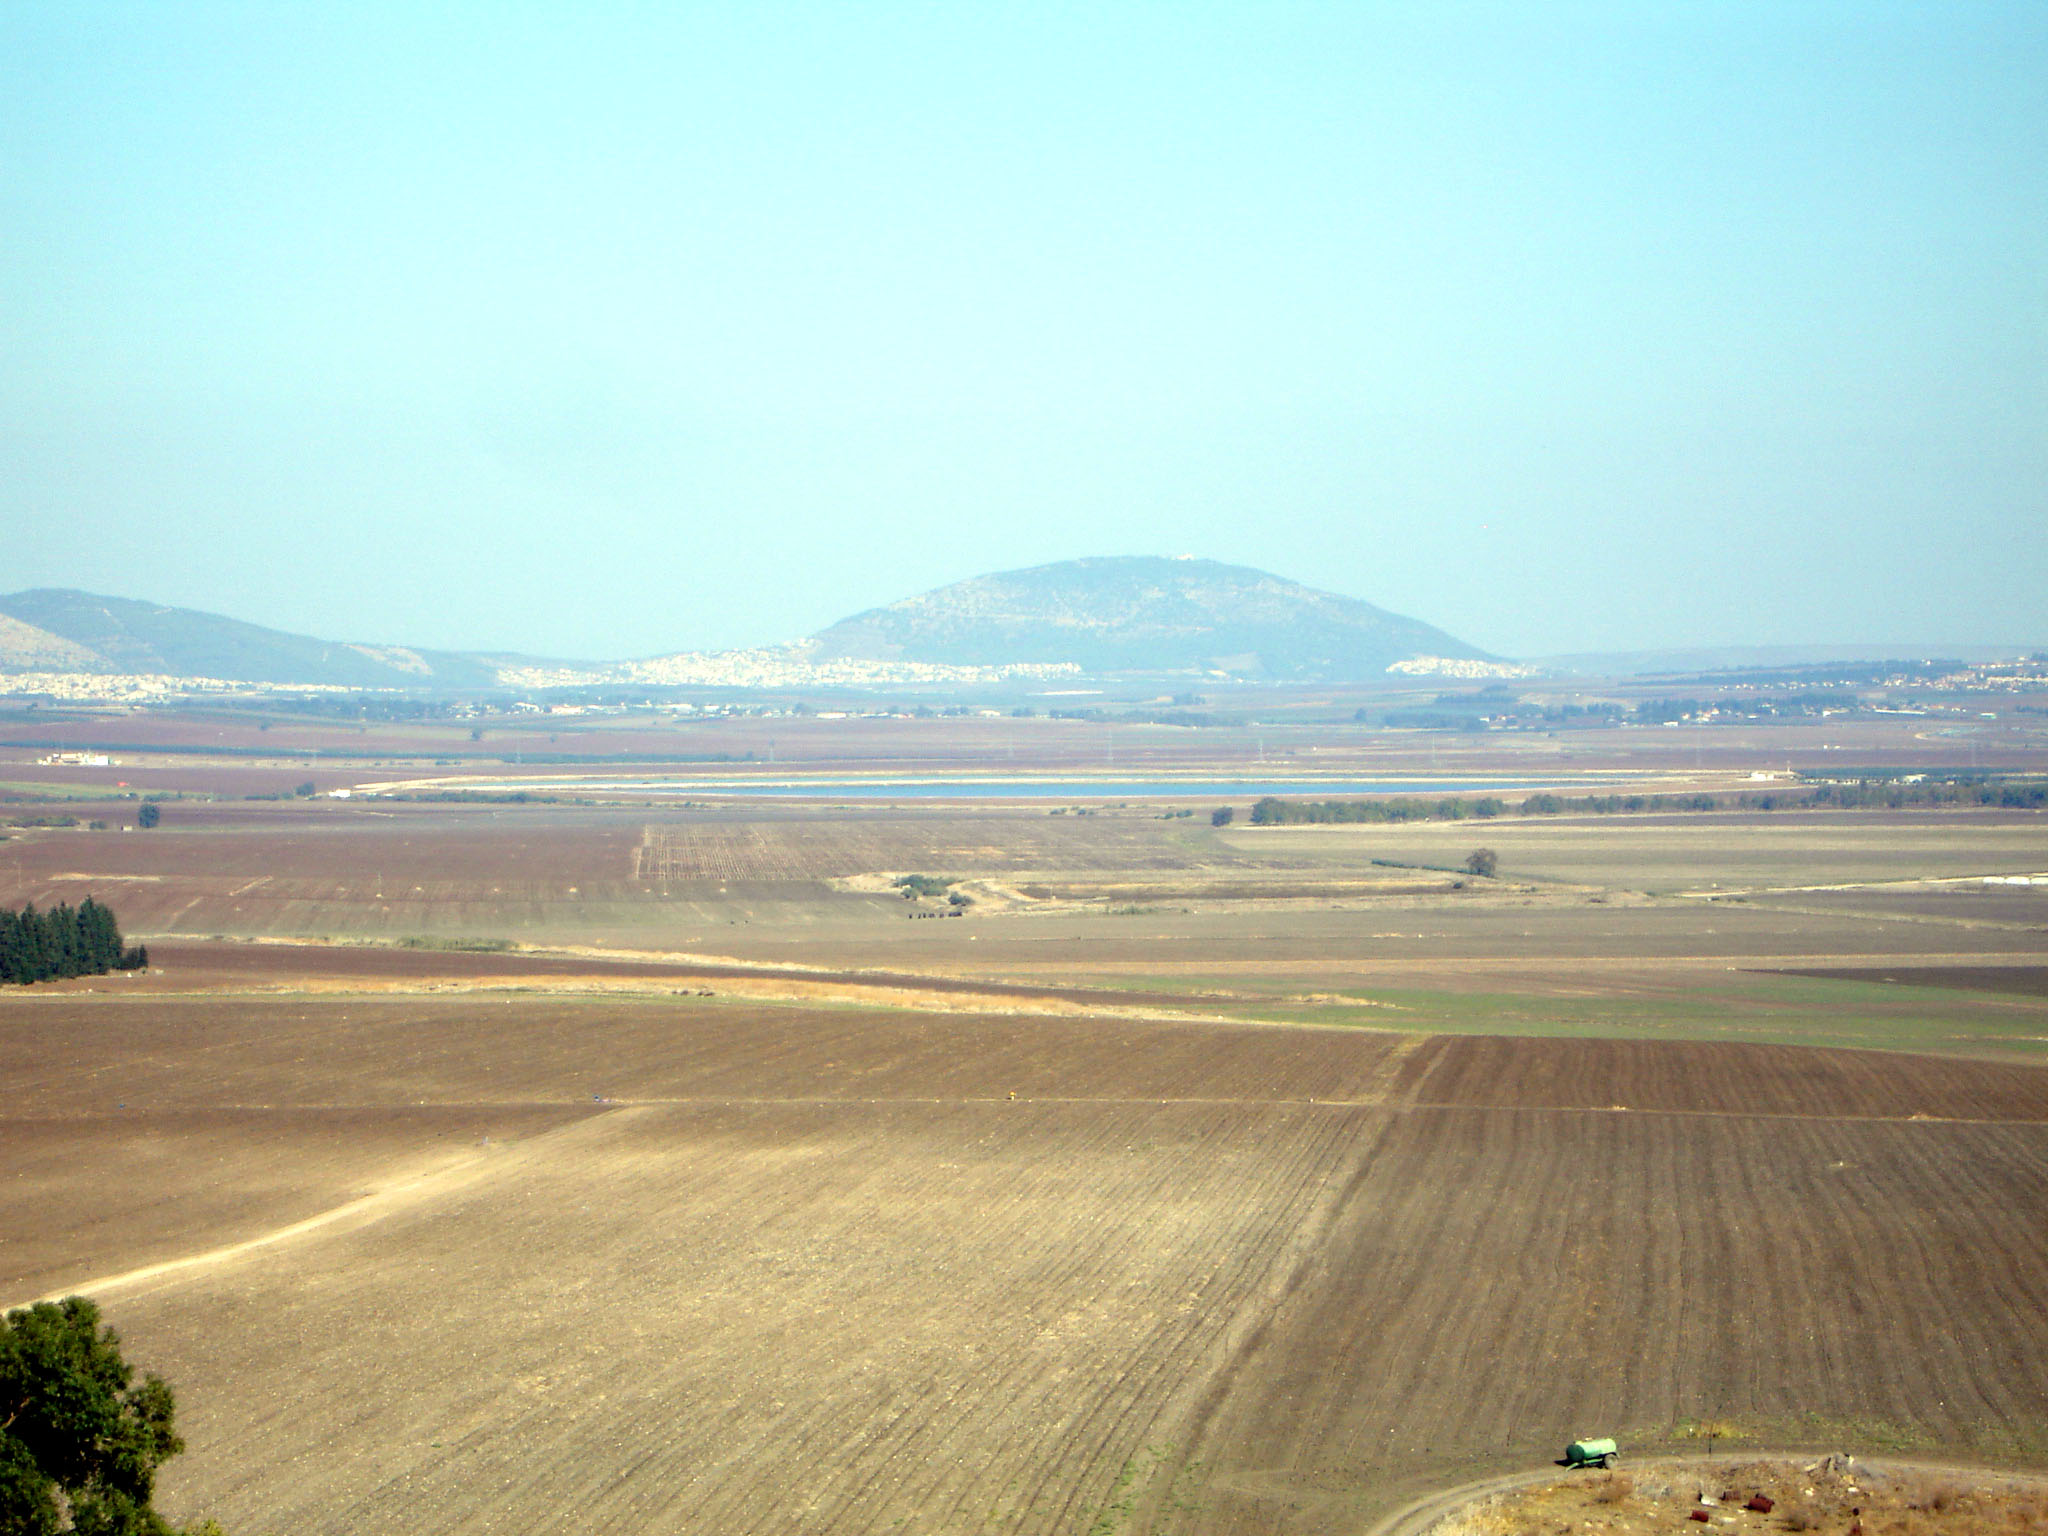 Jezreel Valley and Mt. Tabor by Joe Freedman (Creative Commons License)